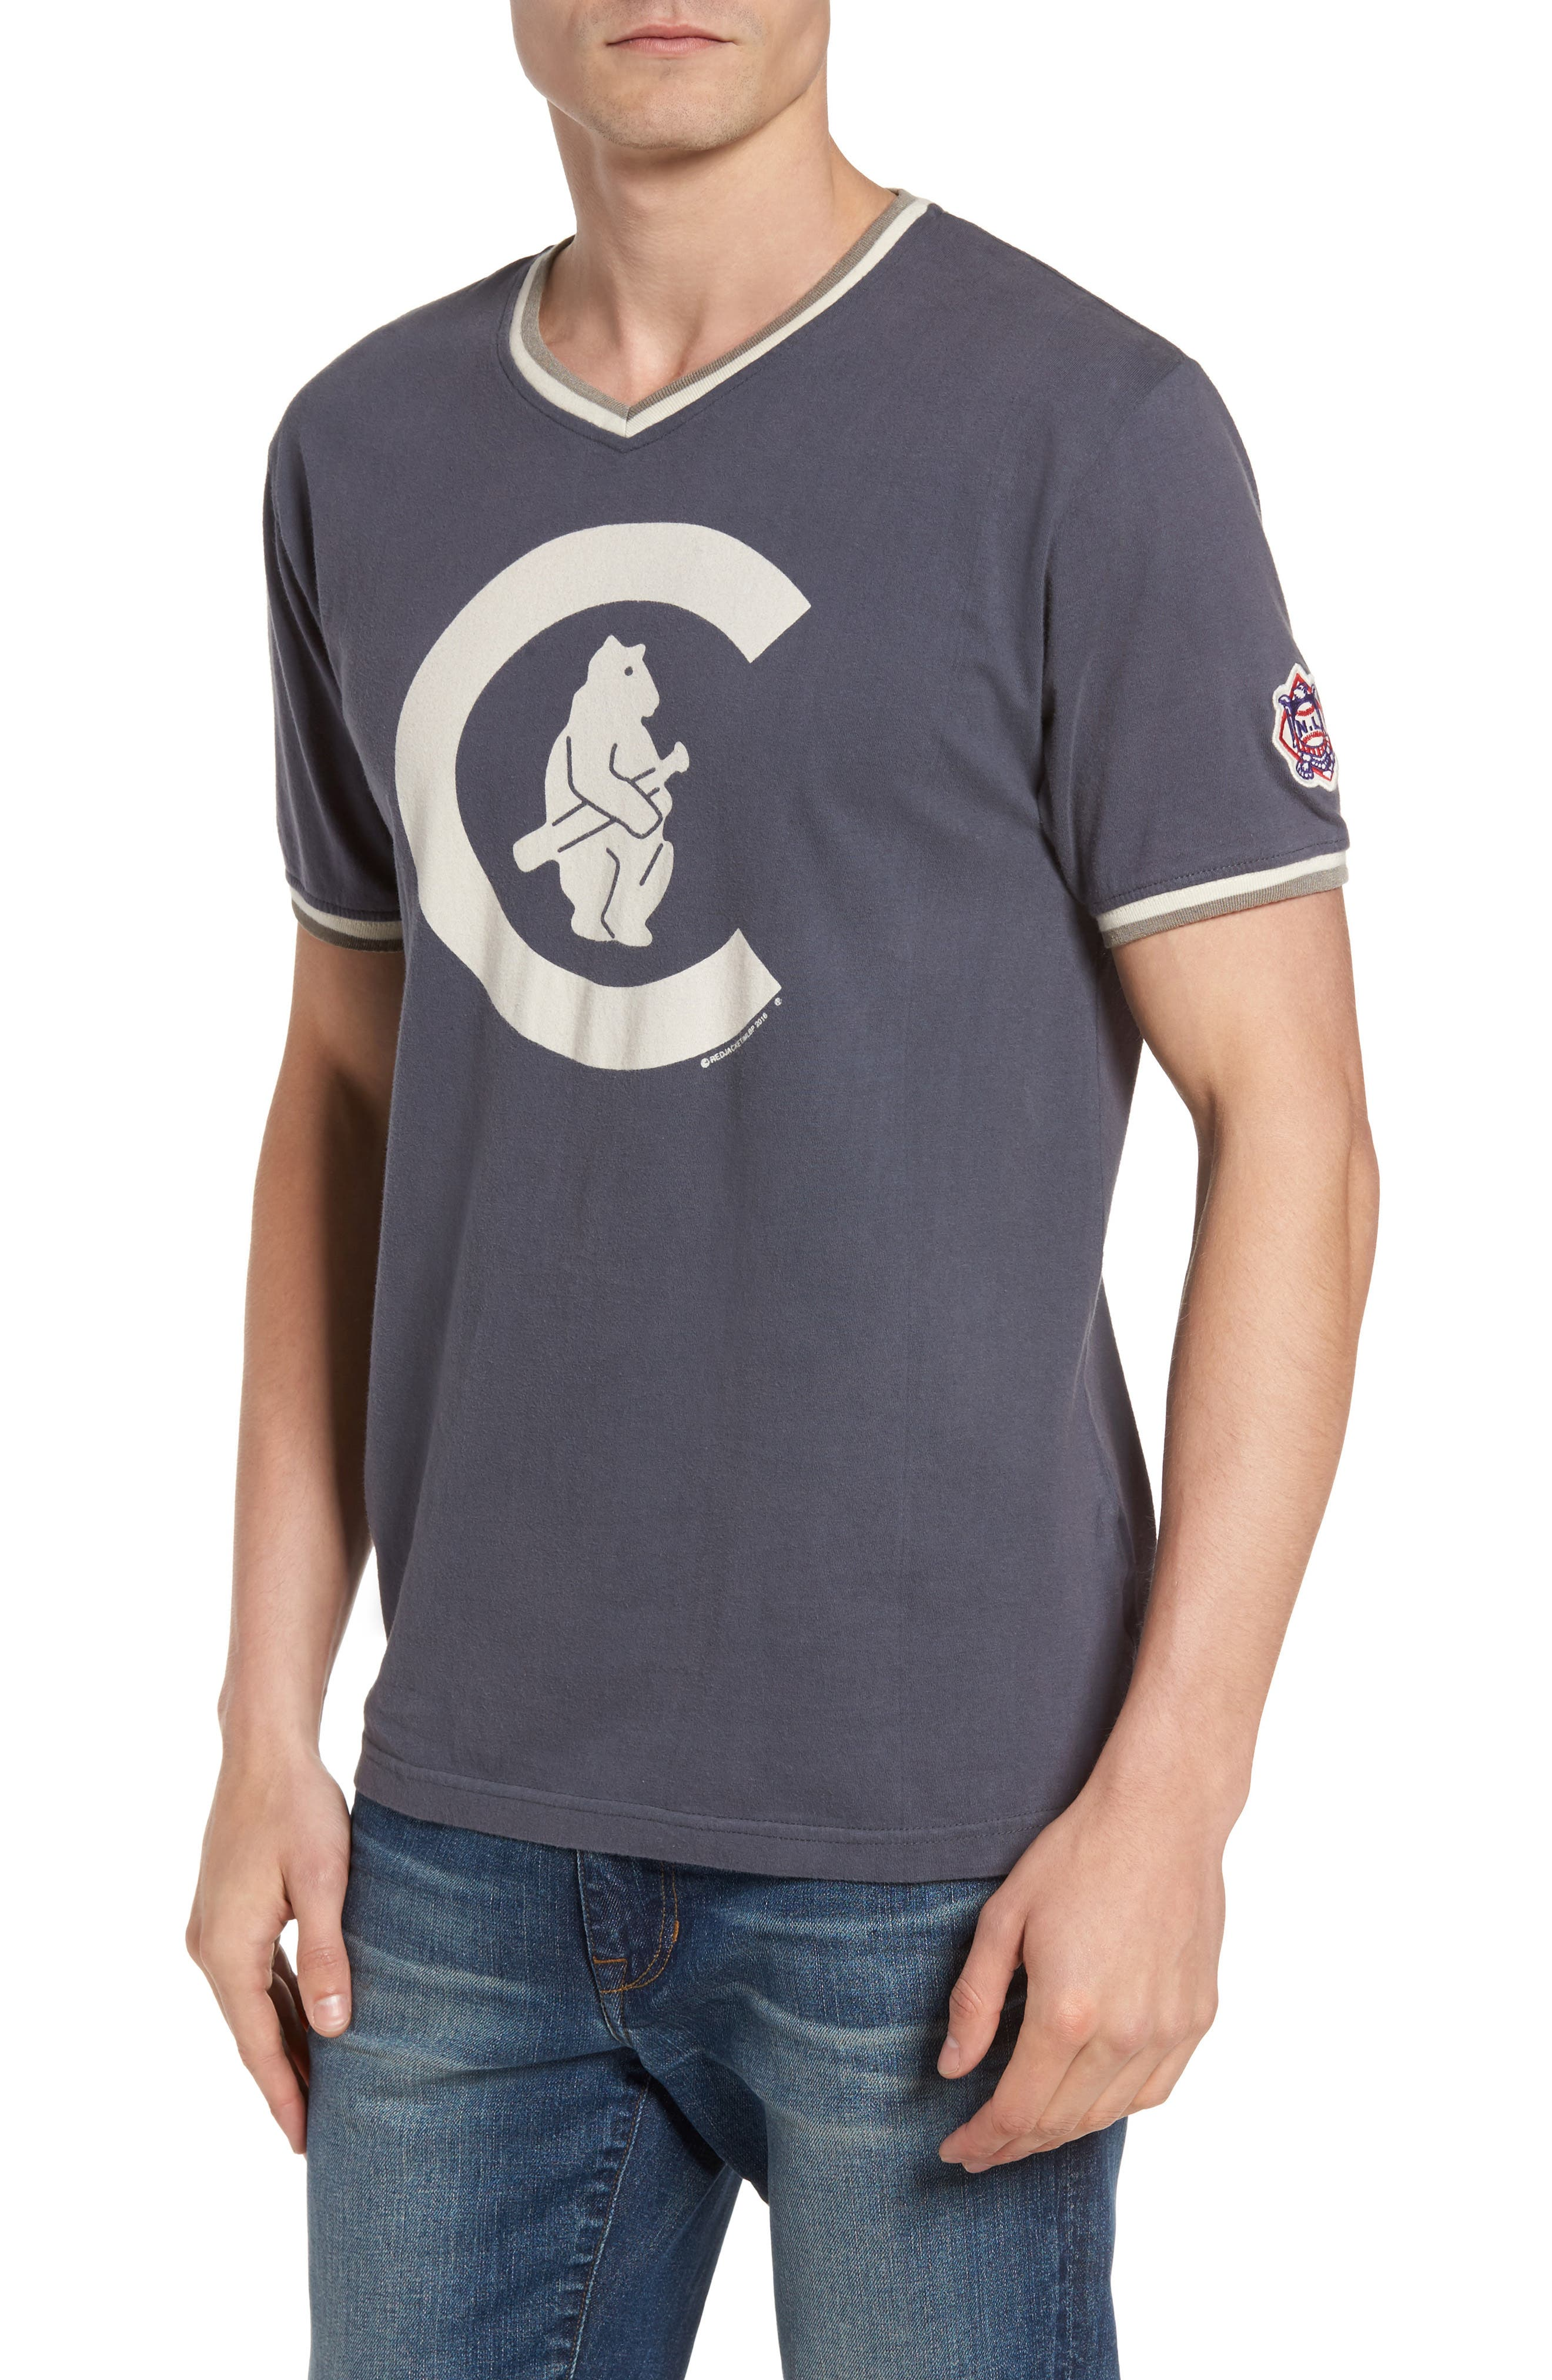 Main Image - American Needle Eastwood - Chicago Cubs V-Neck T-Shirt